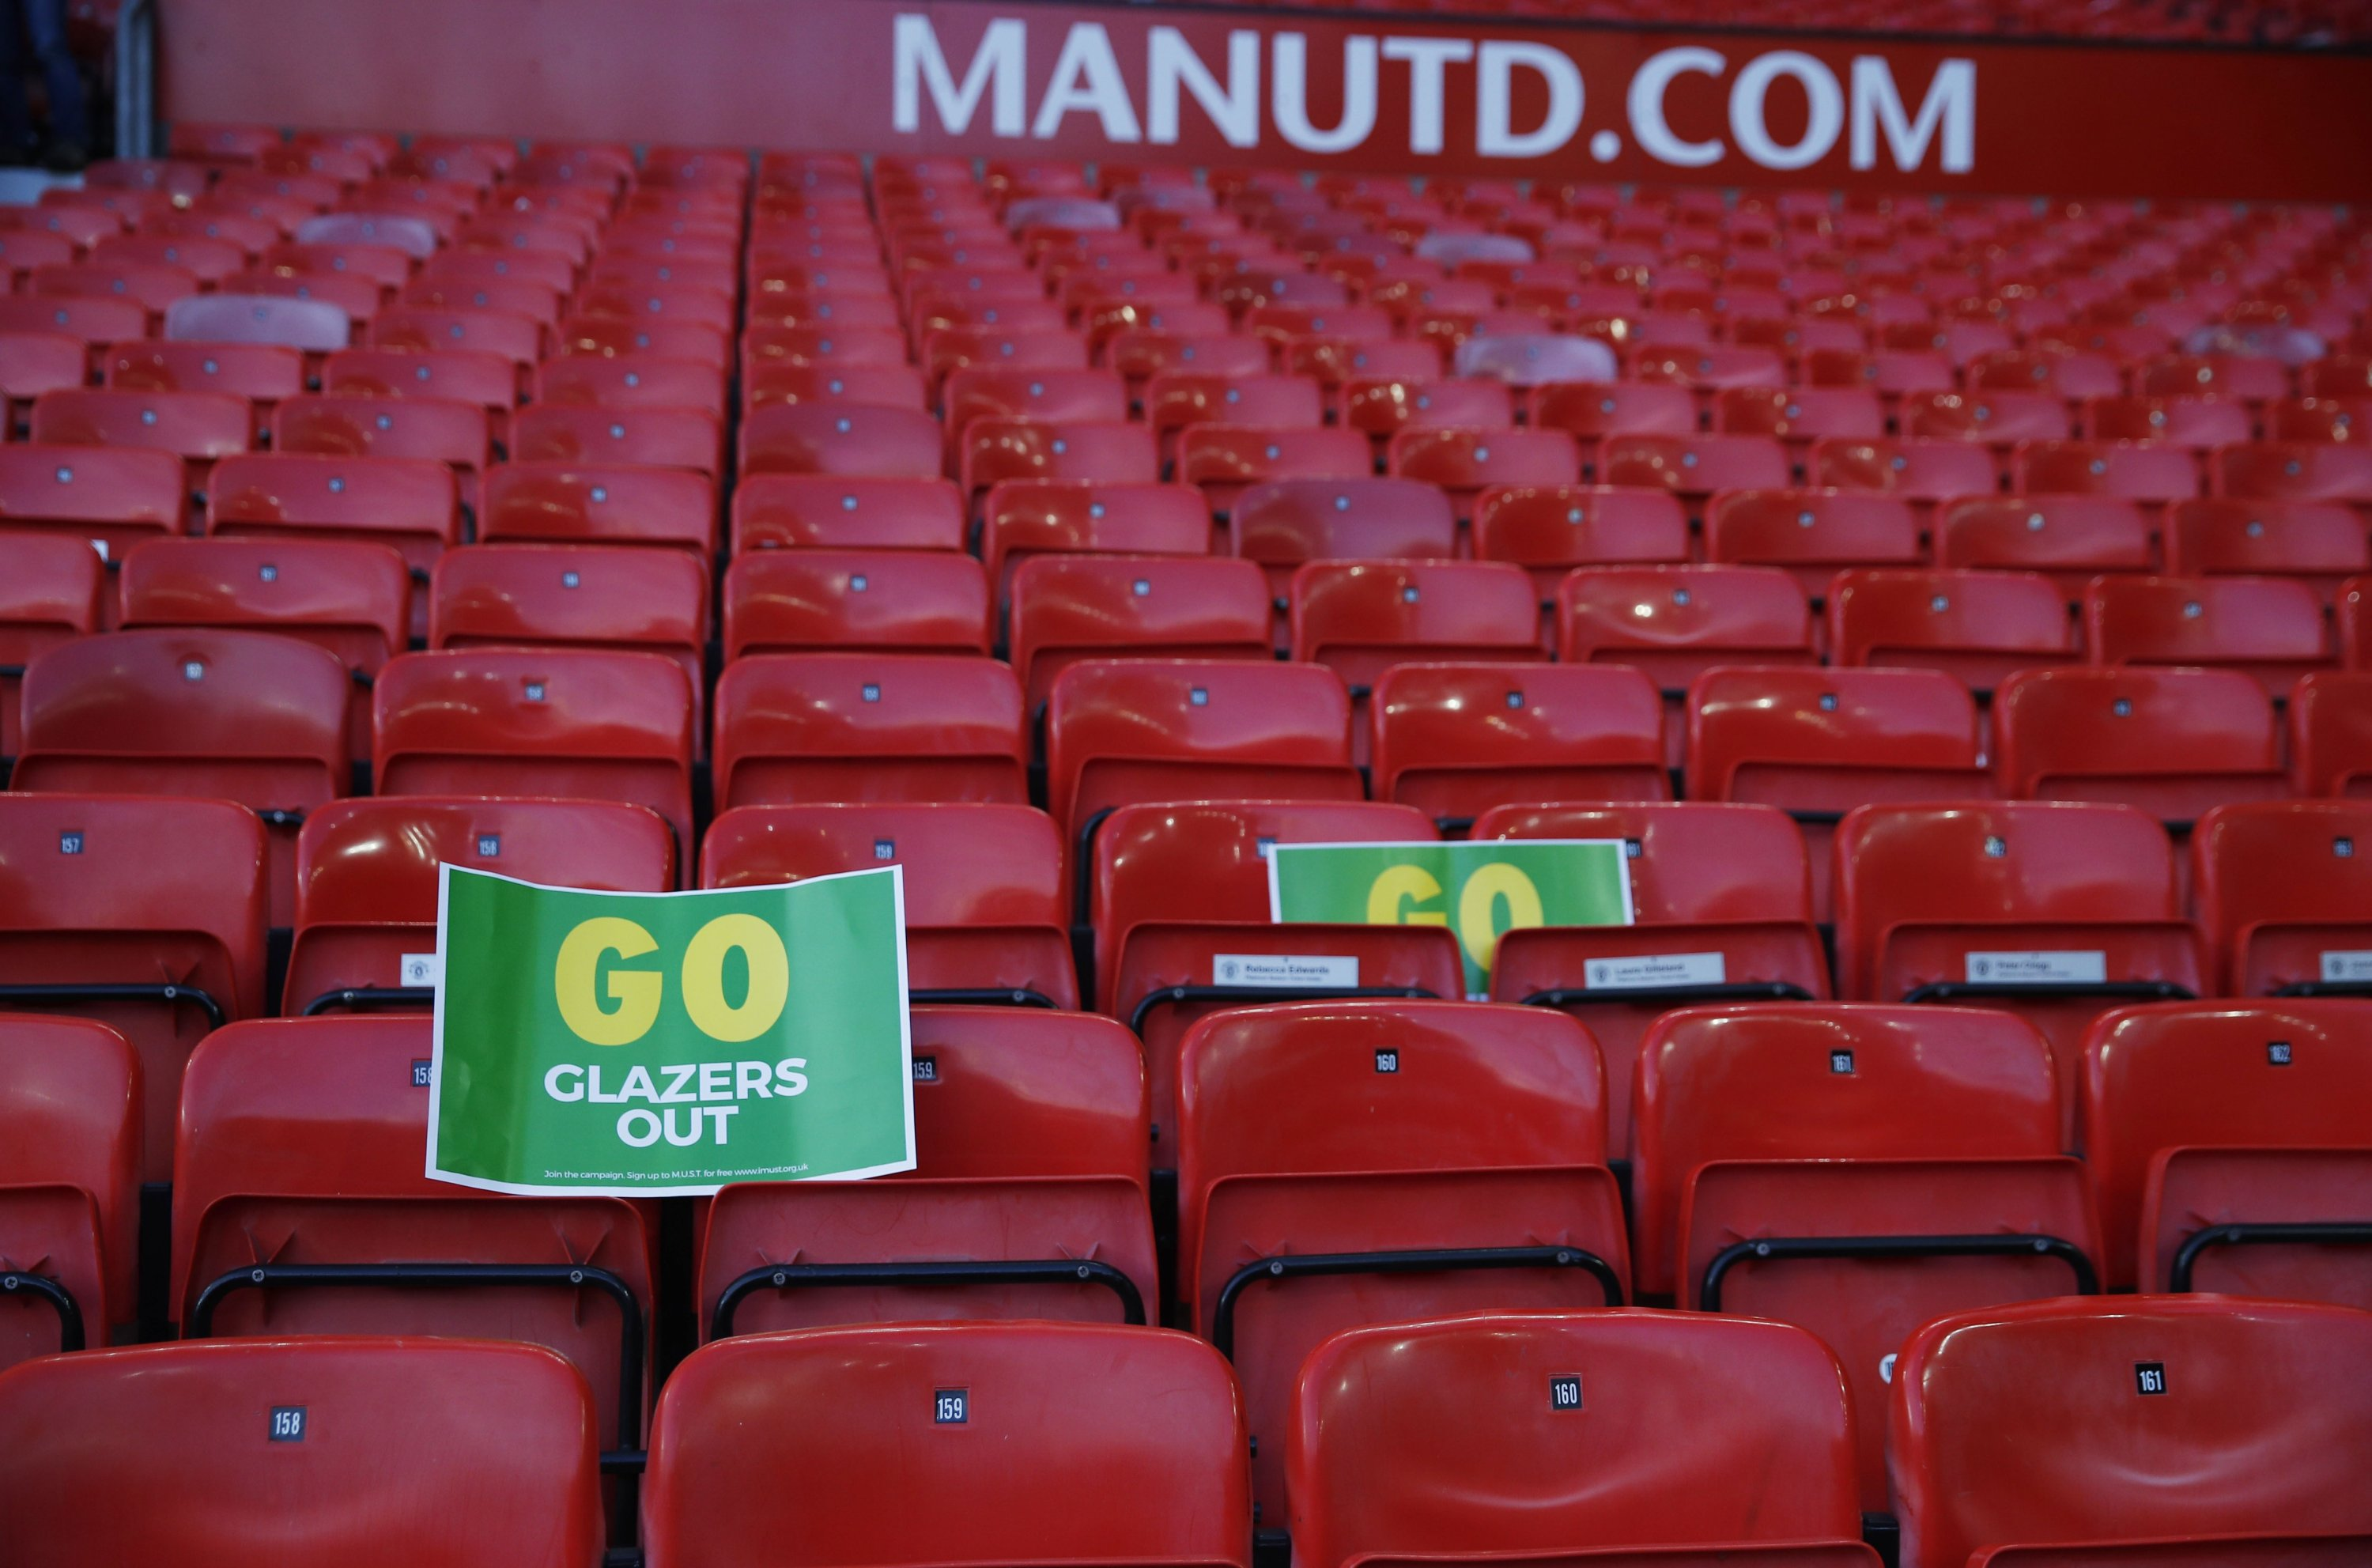 A  'Go Glazers Out' sign is attached to the stands after the Premier League match between Manchester United and Fulham at Old Trafford, Manchester, Britain, May 18, 2021. (Reuters Photo)